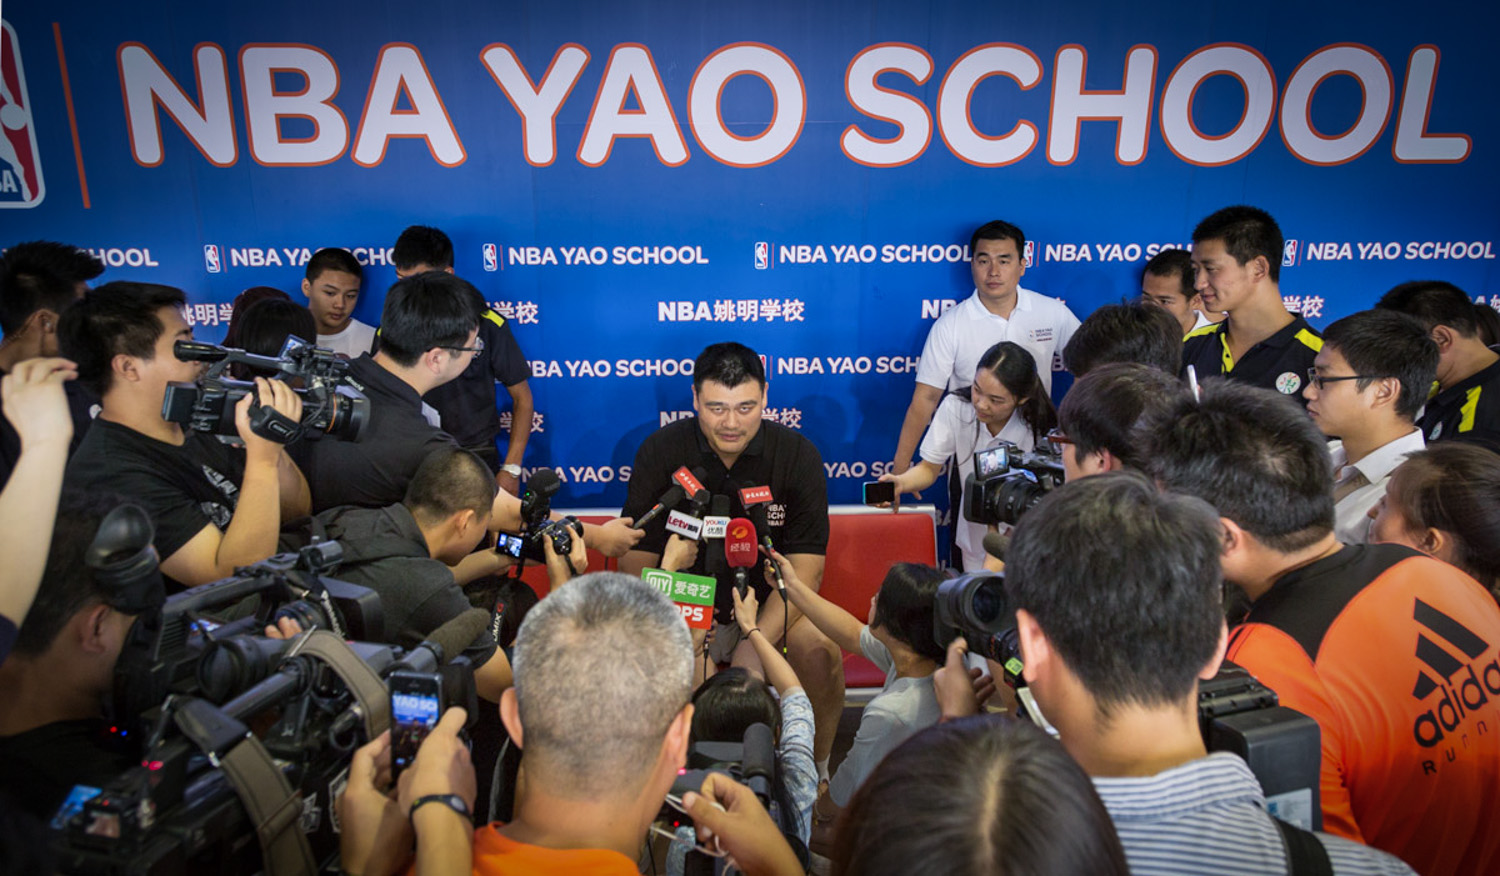 Yao Ming looks at me during a Press Conference for his basketball summer camp in Beijing